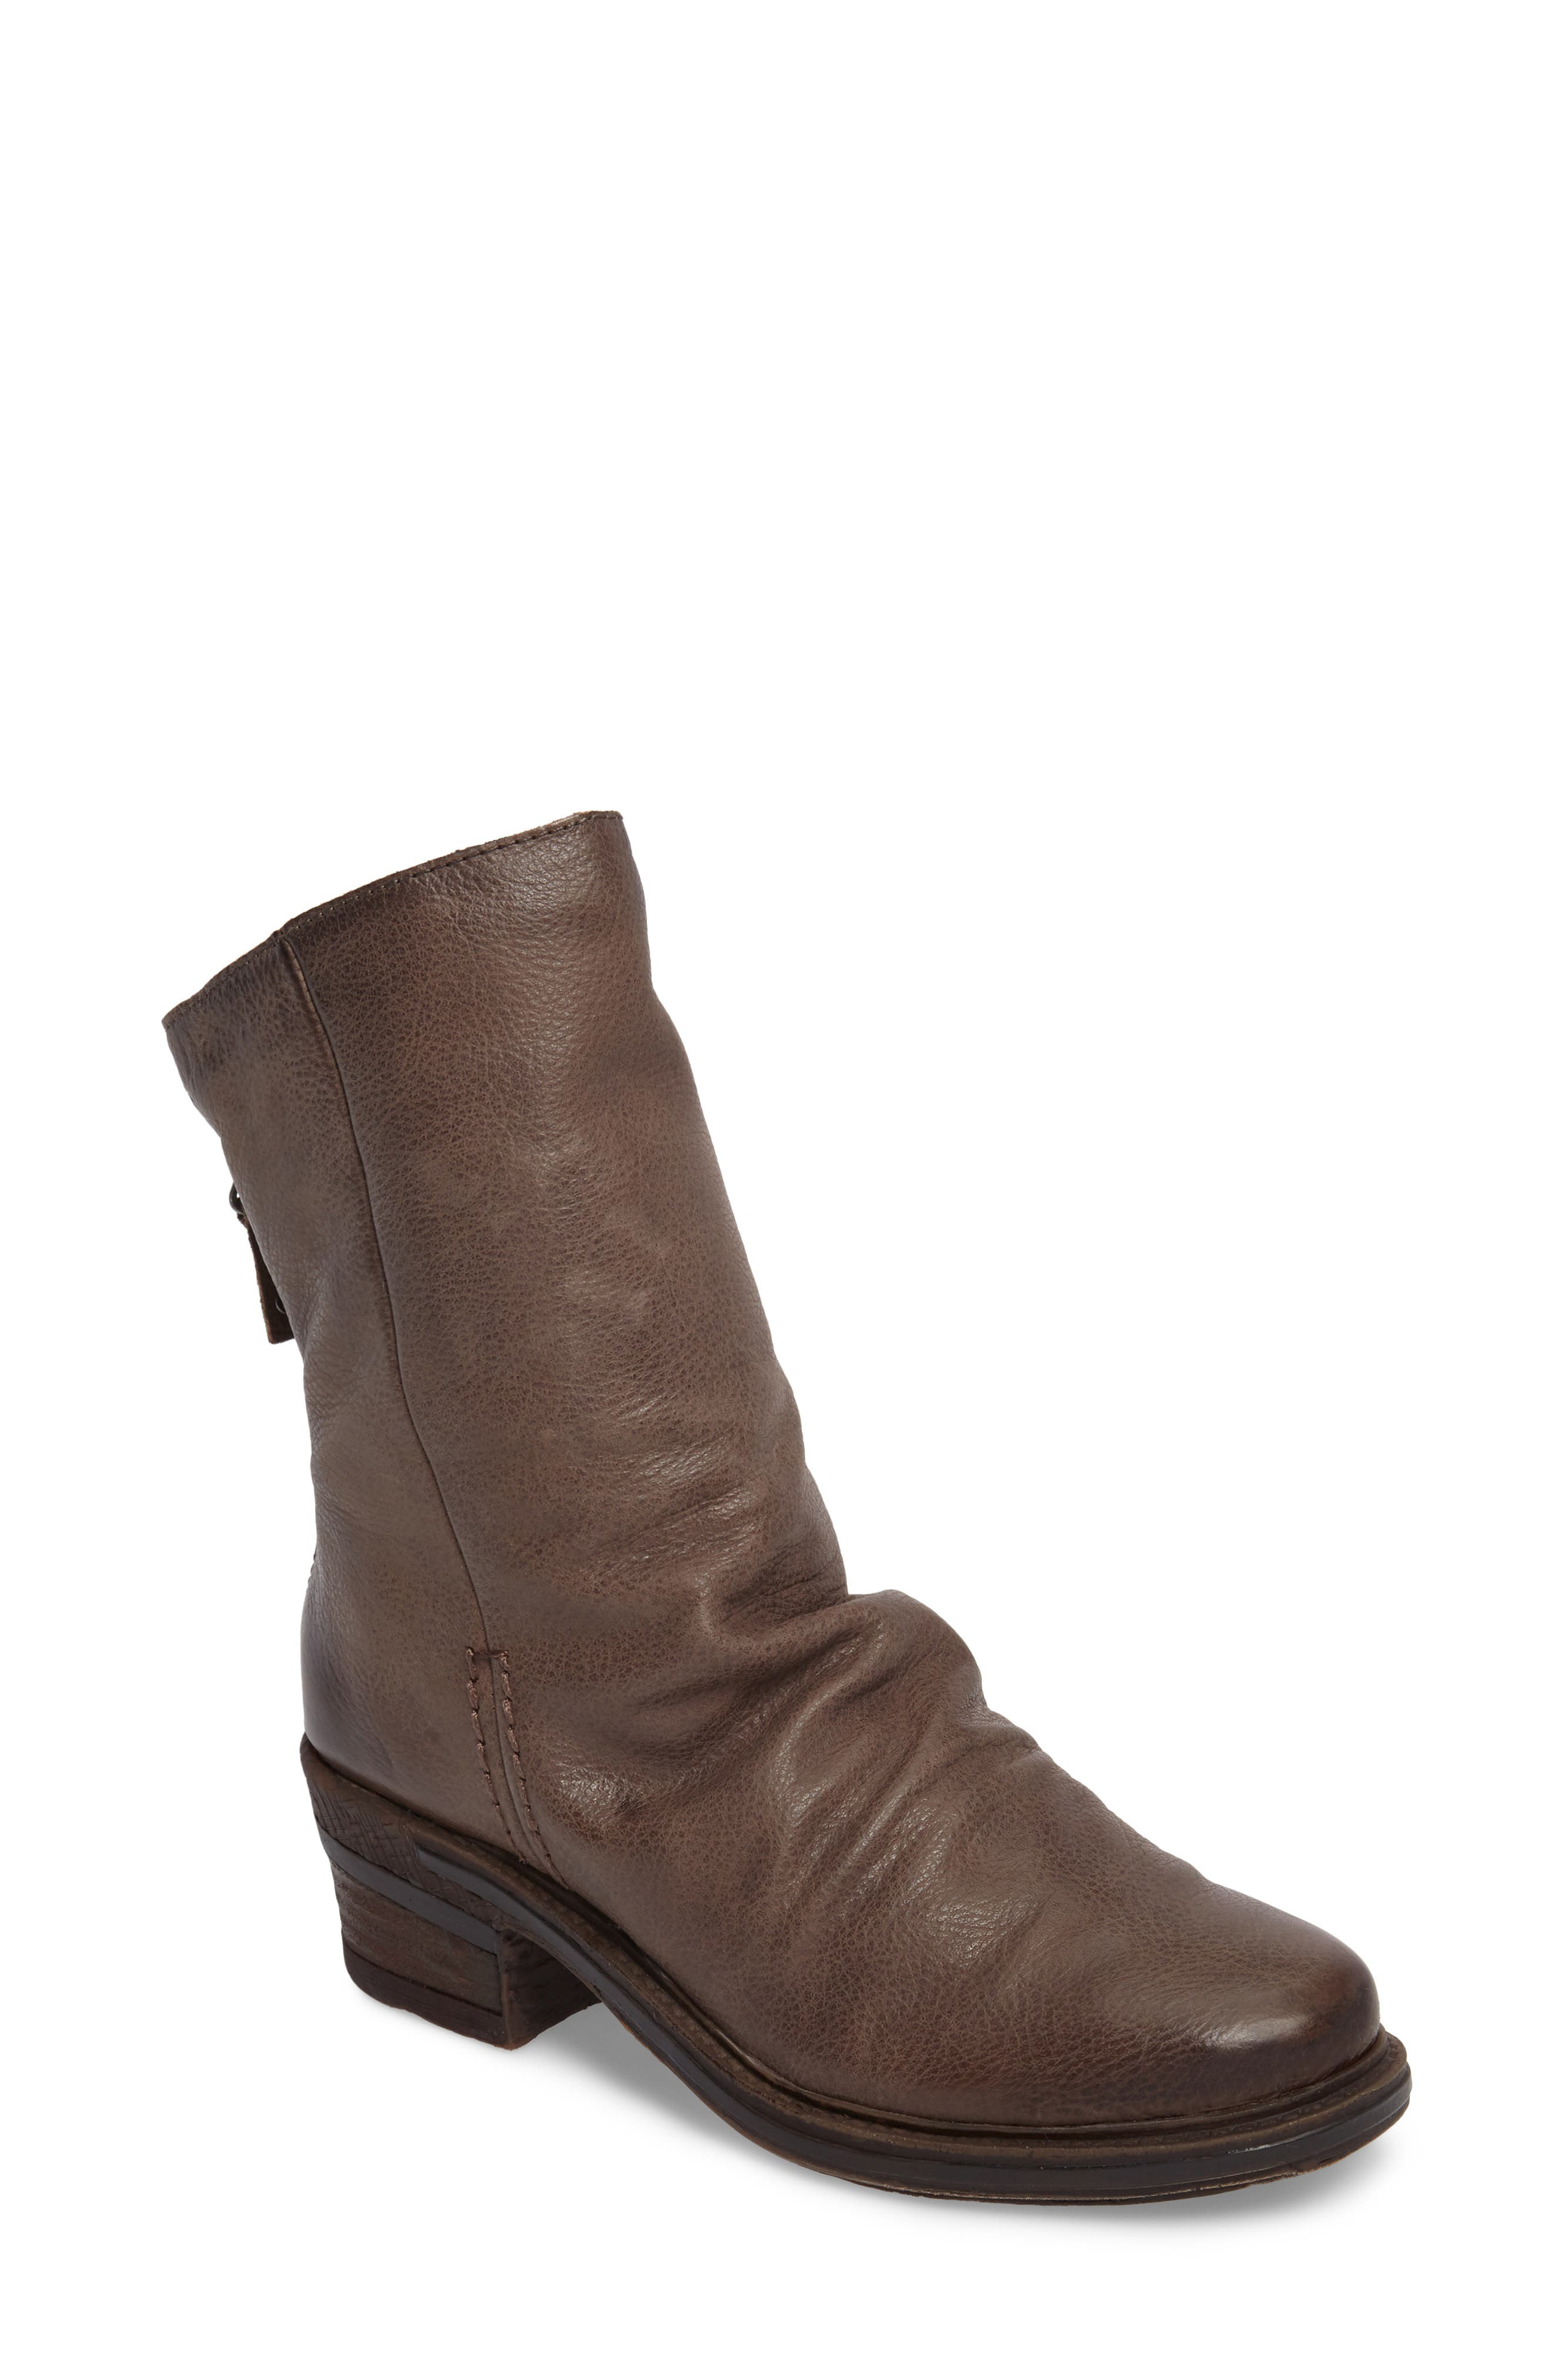 Alternate Image 1 Selected - OTBT Fernweh Slouchy Bootie (Women)